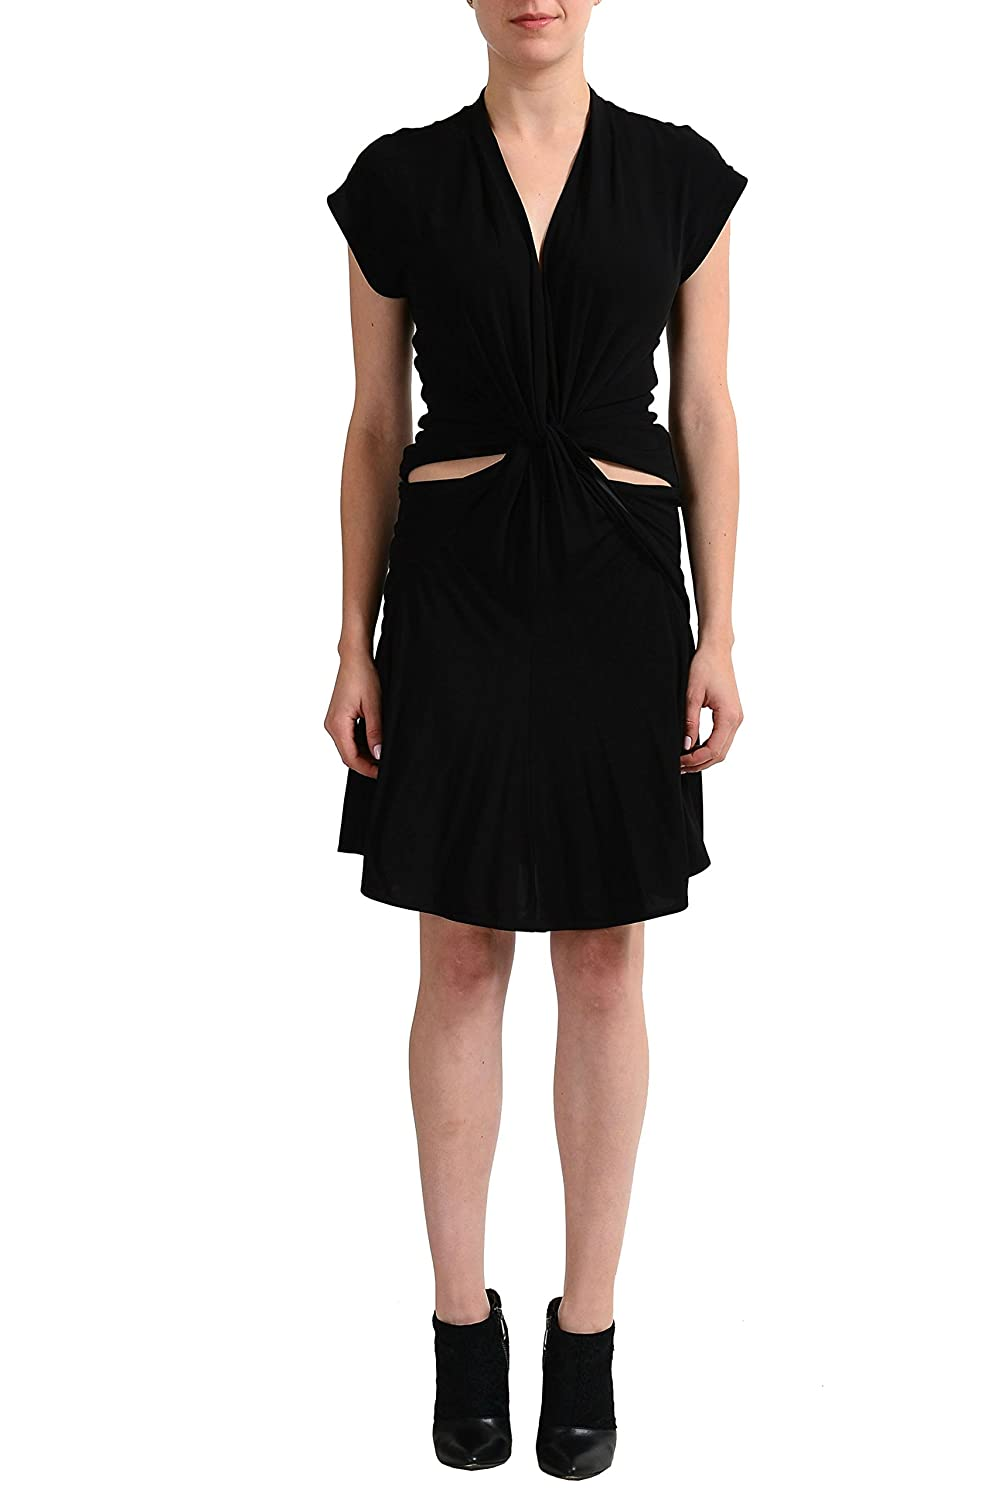 Just Cavalli Black Cap Sleeve Women's Sheath Dress US S IT 40